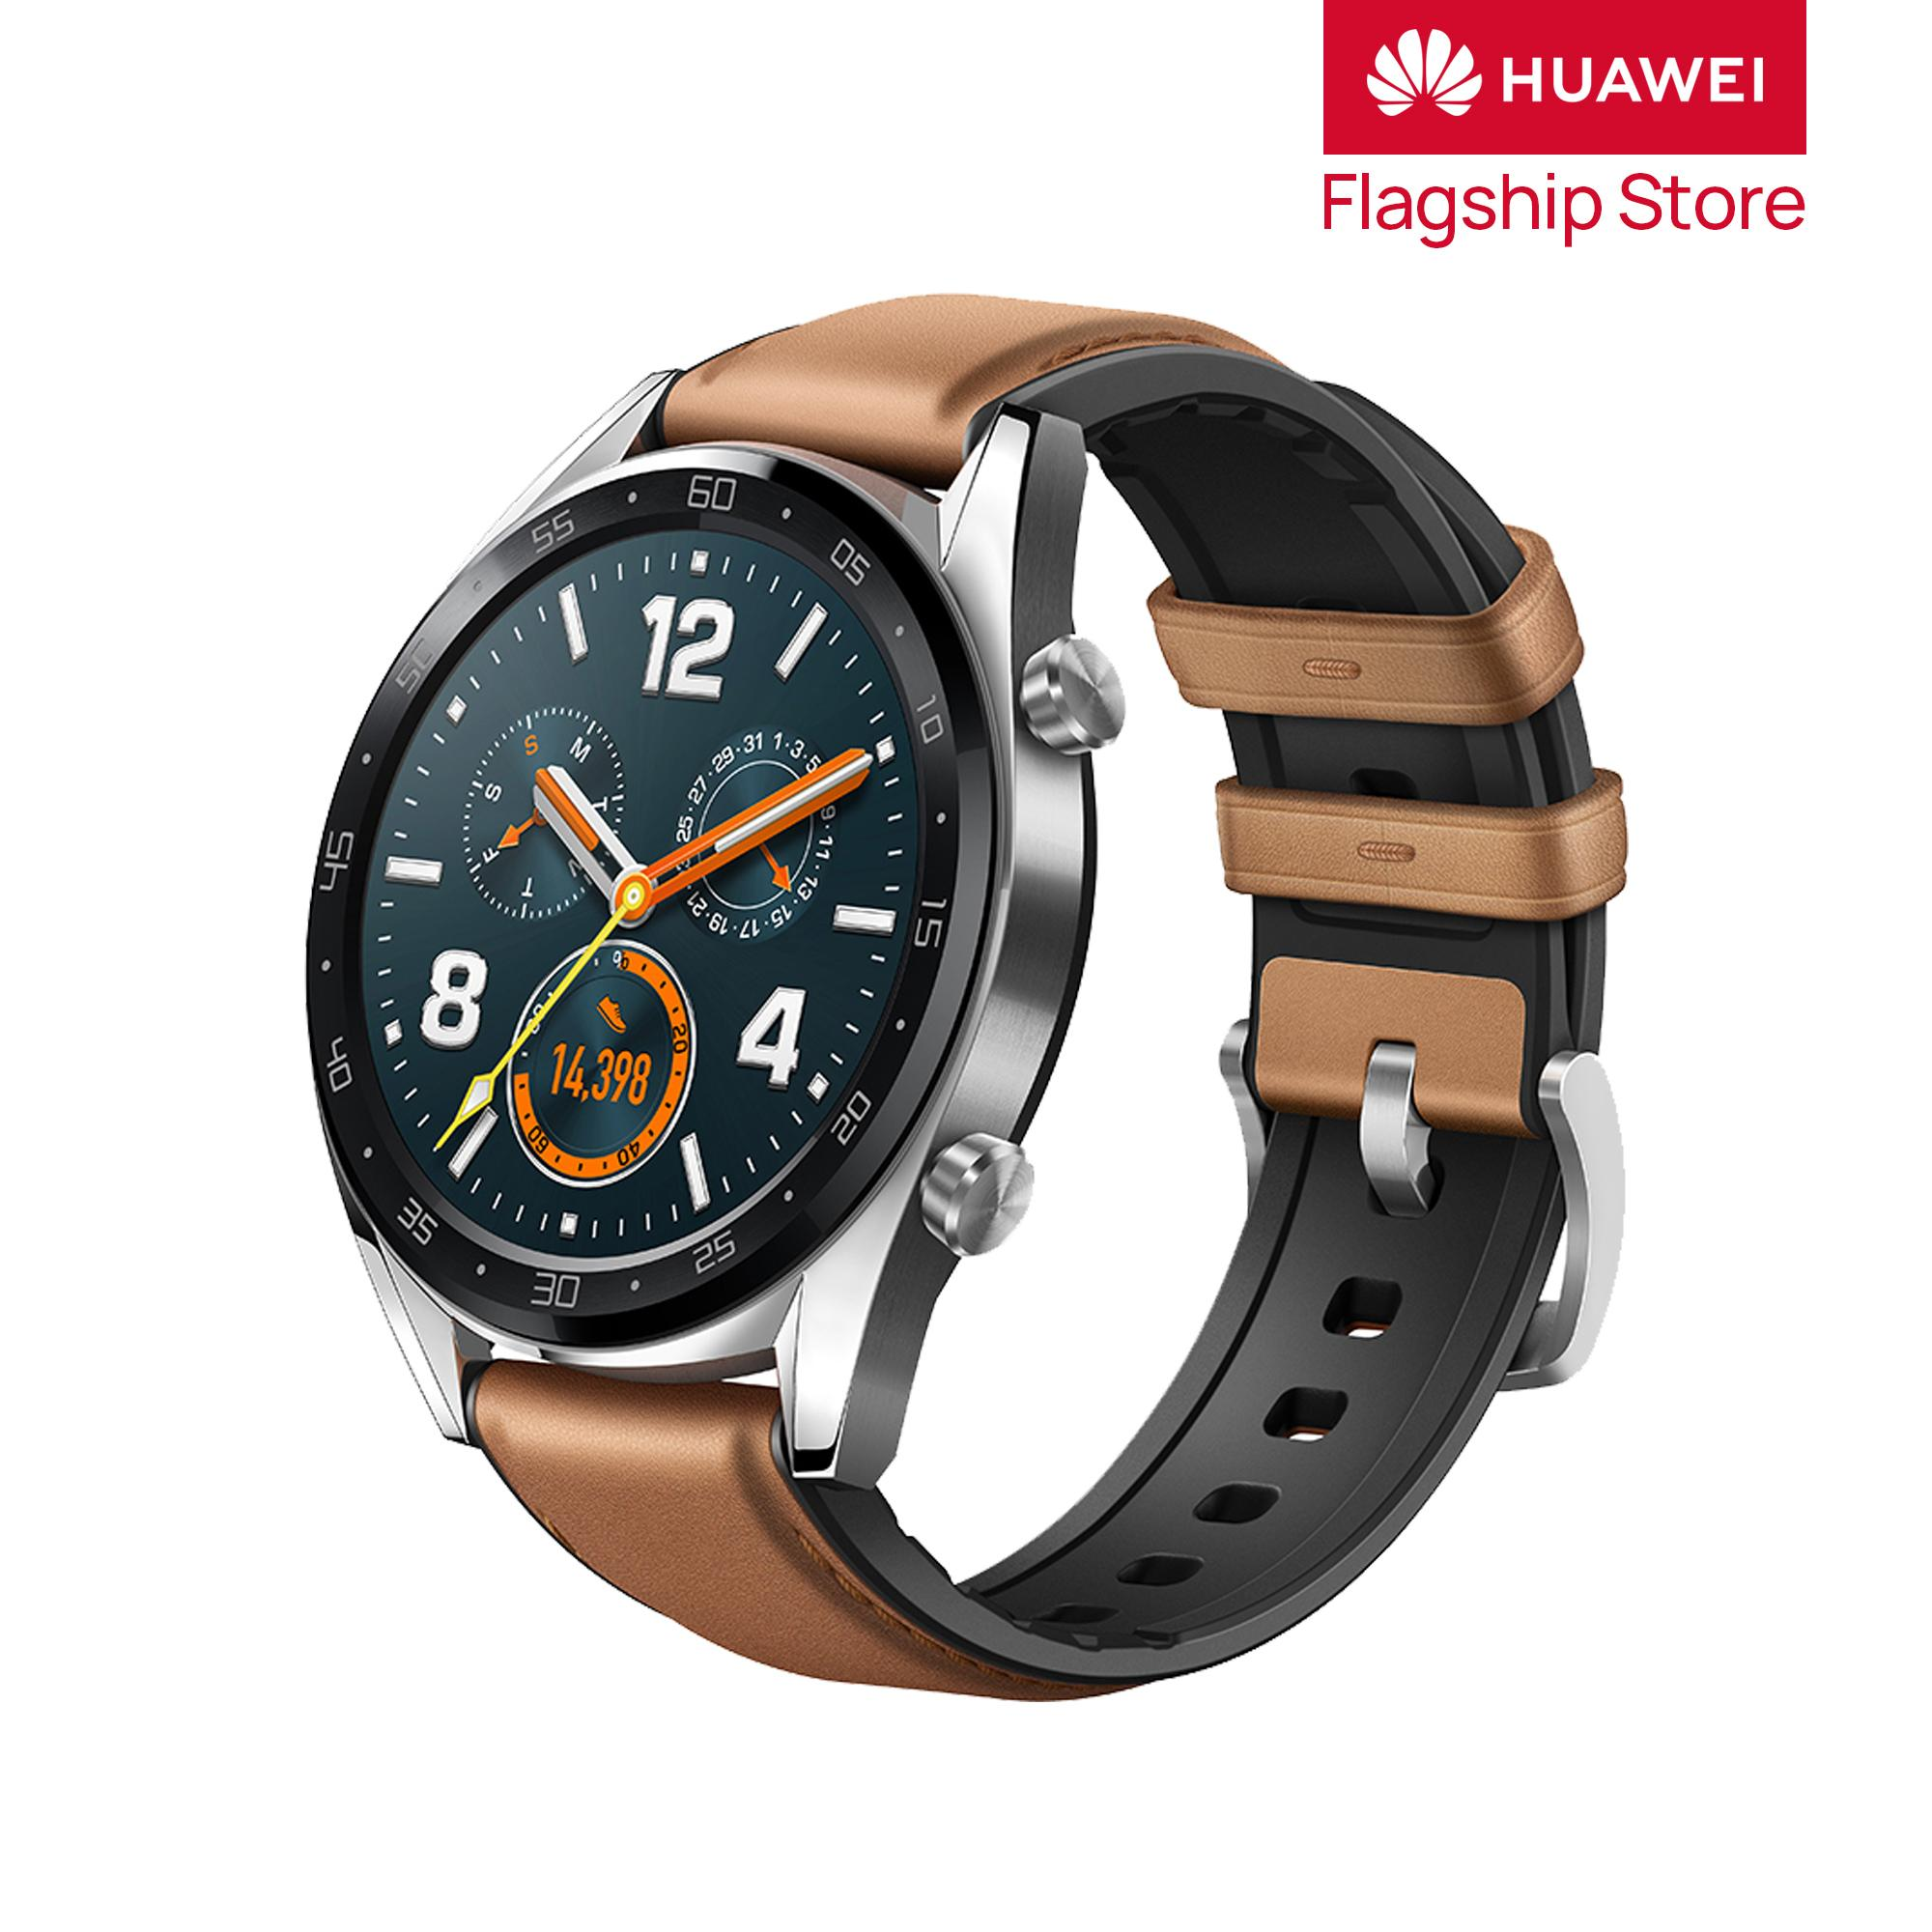 Men's Watches 2019 New Style A1 Bluetooth Smart Watch Hd Screen Support Sim Card Wearable Devices Smartwatch For Apple Android Pk Dz09 Gt08 Watch